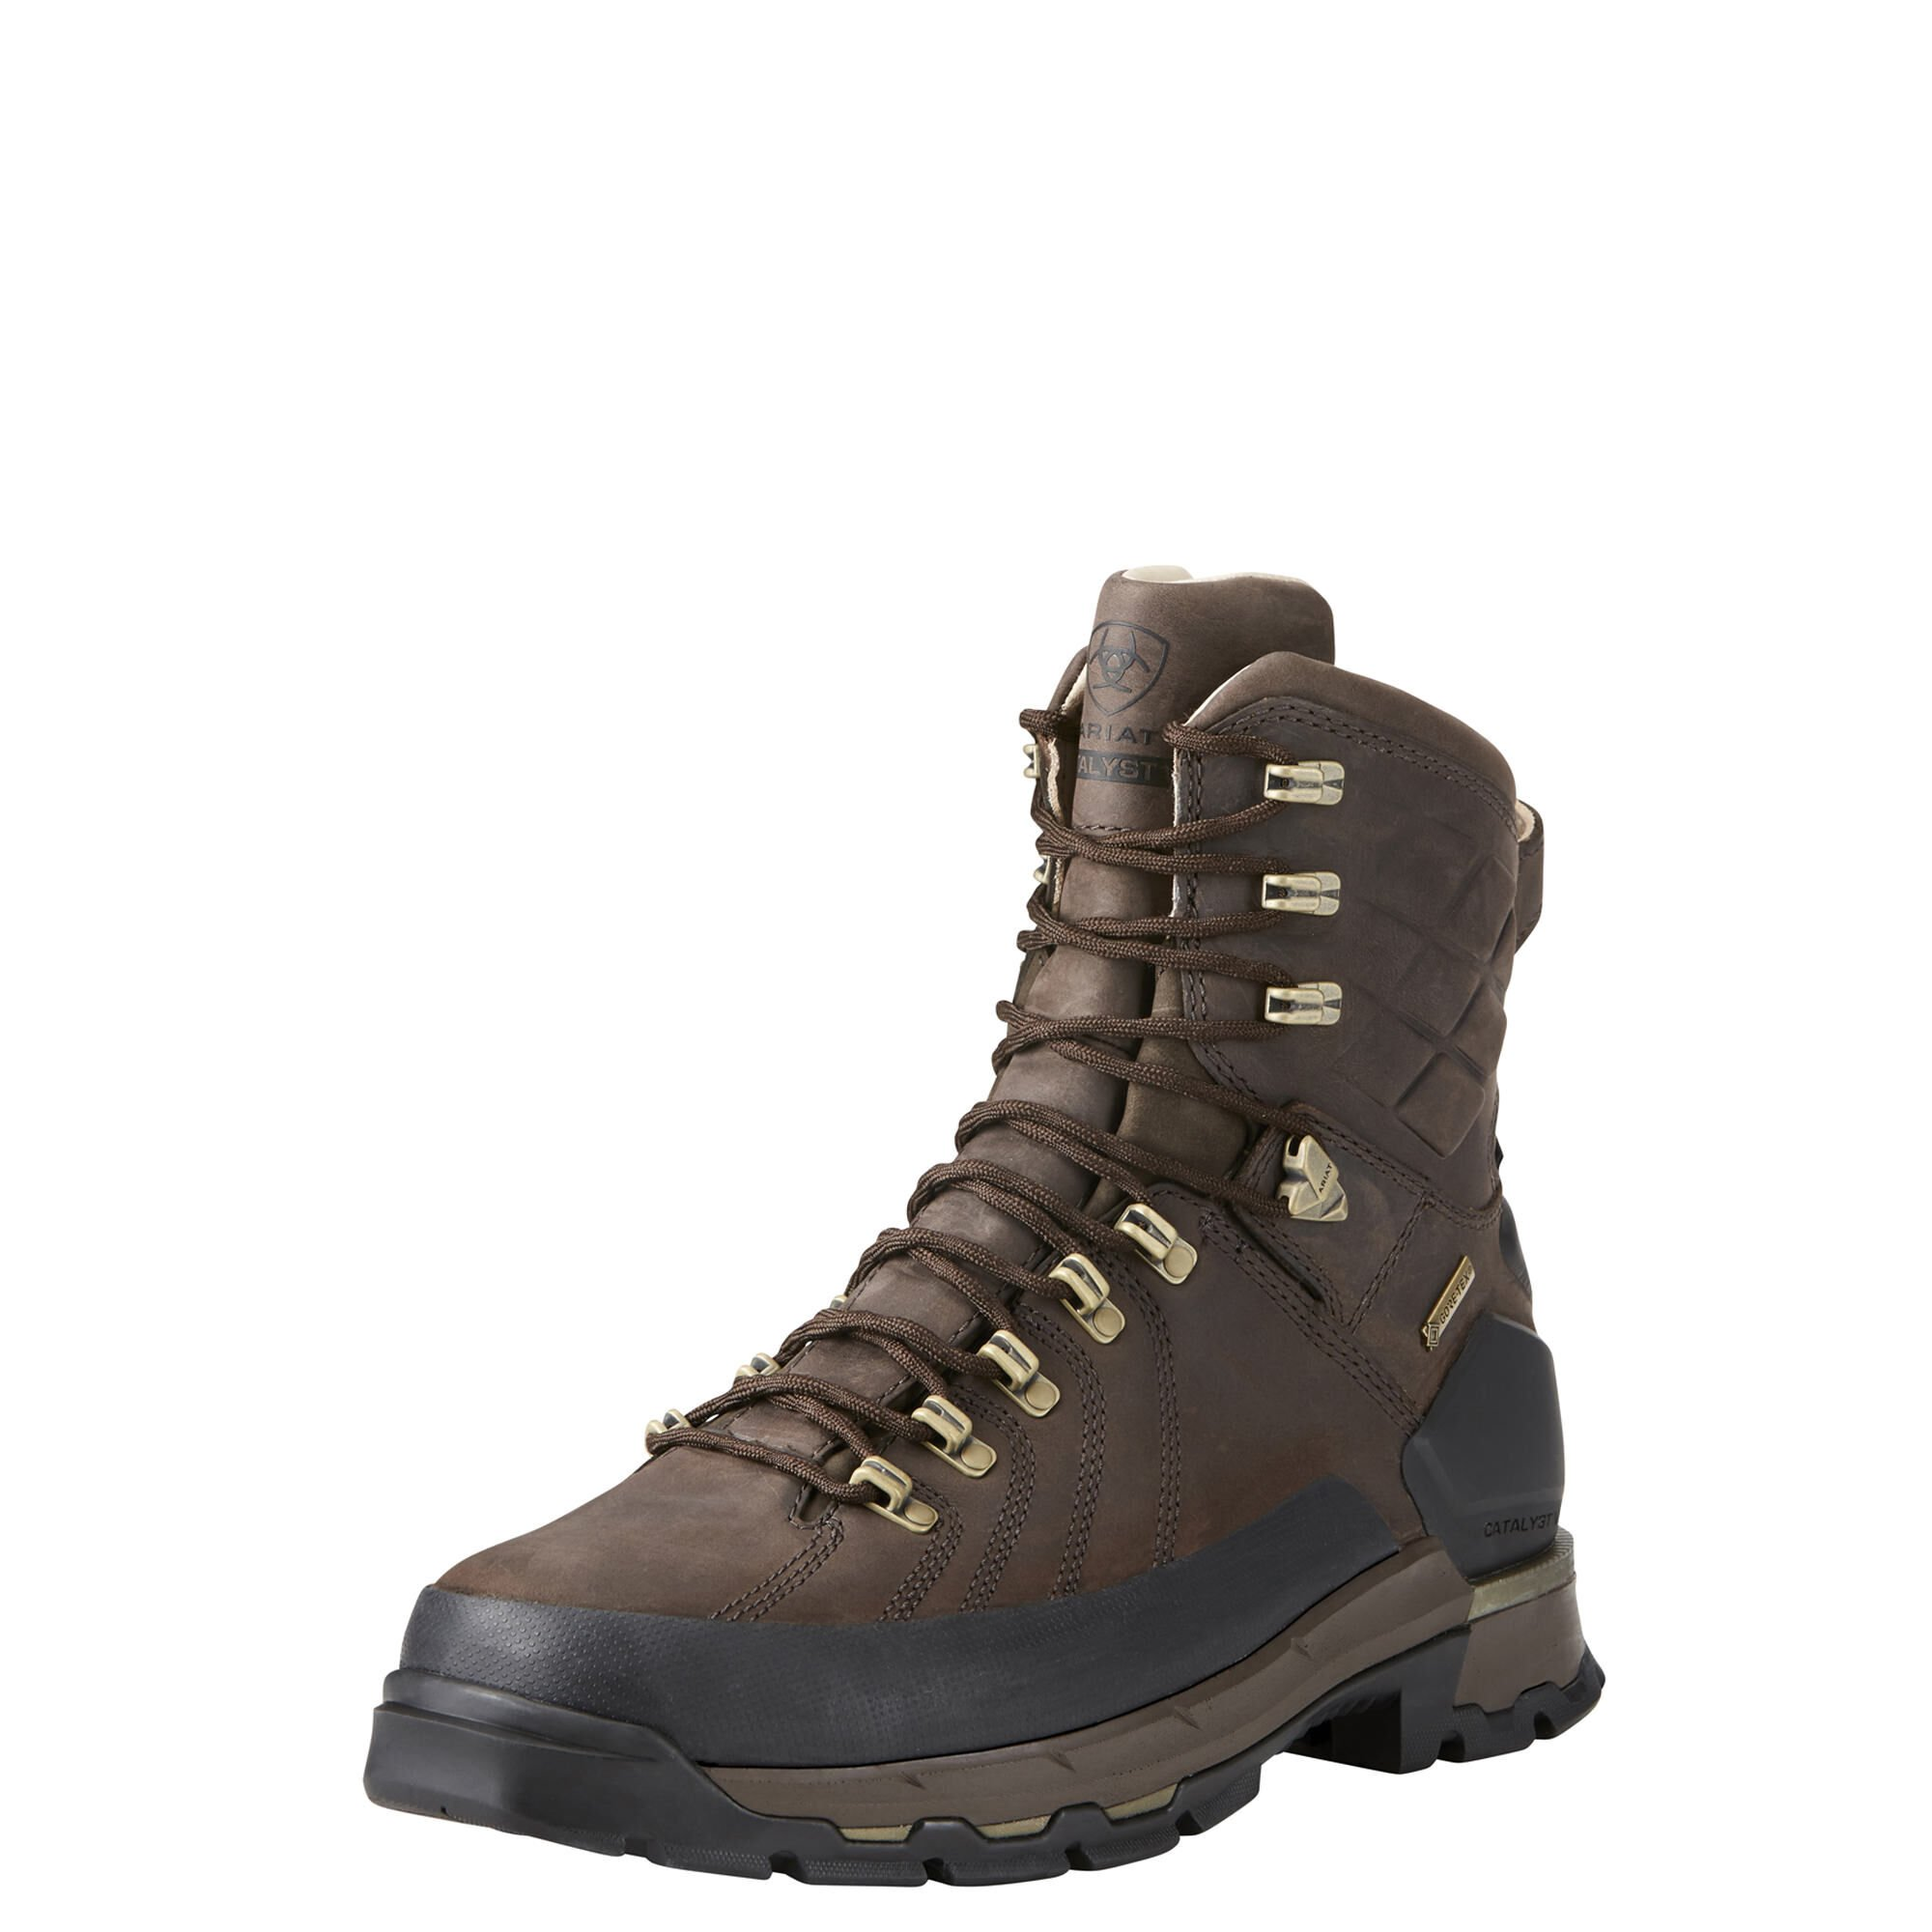 "Catalyst VX Defiant 8"" Gore-Tex 400g Hunting Boot"